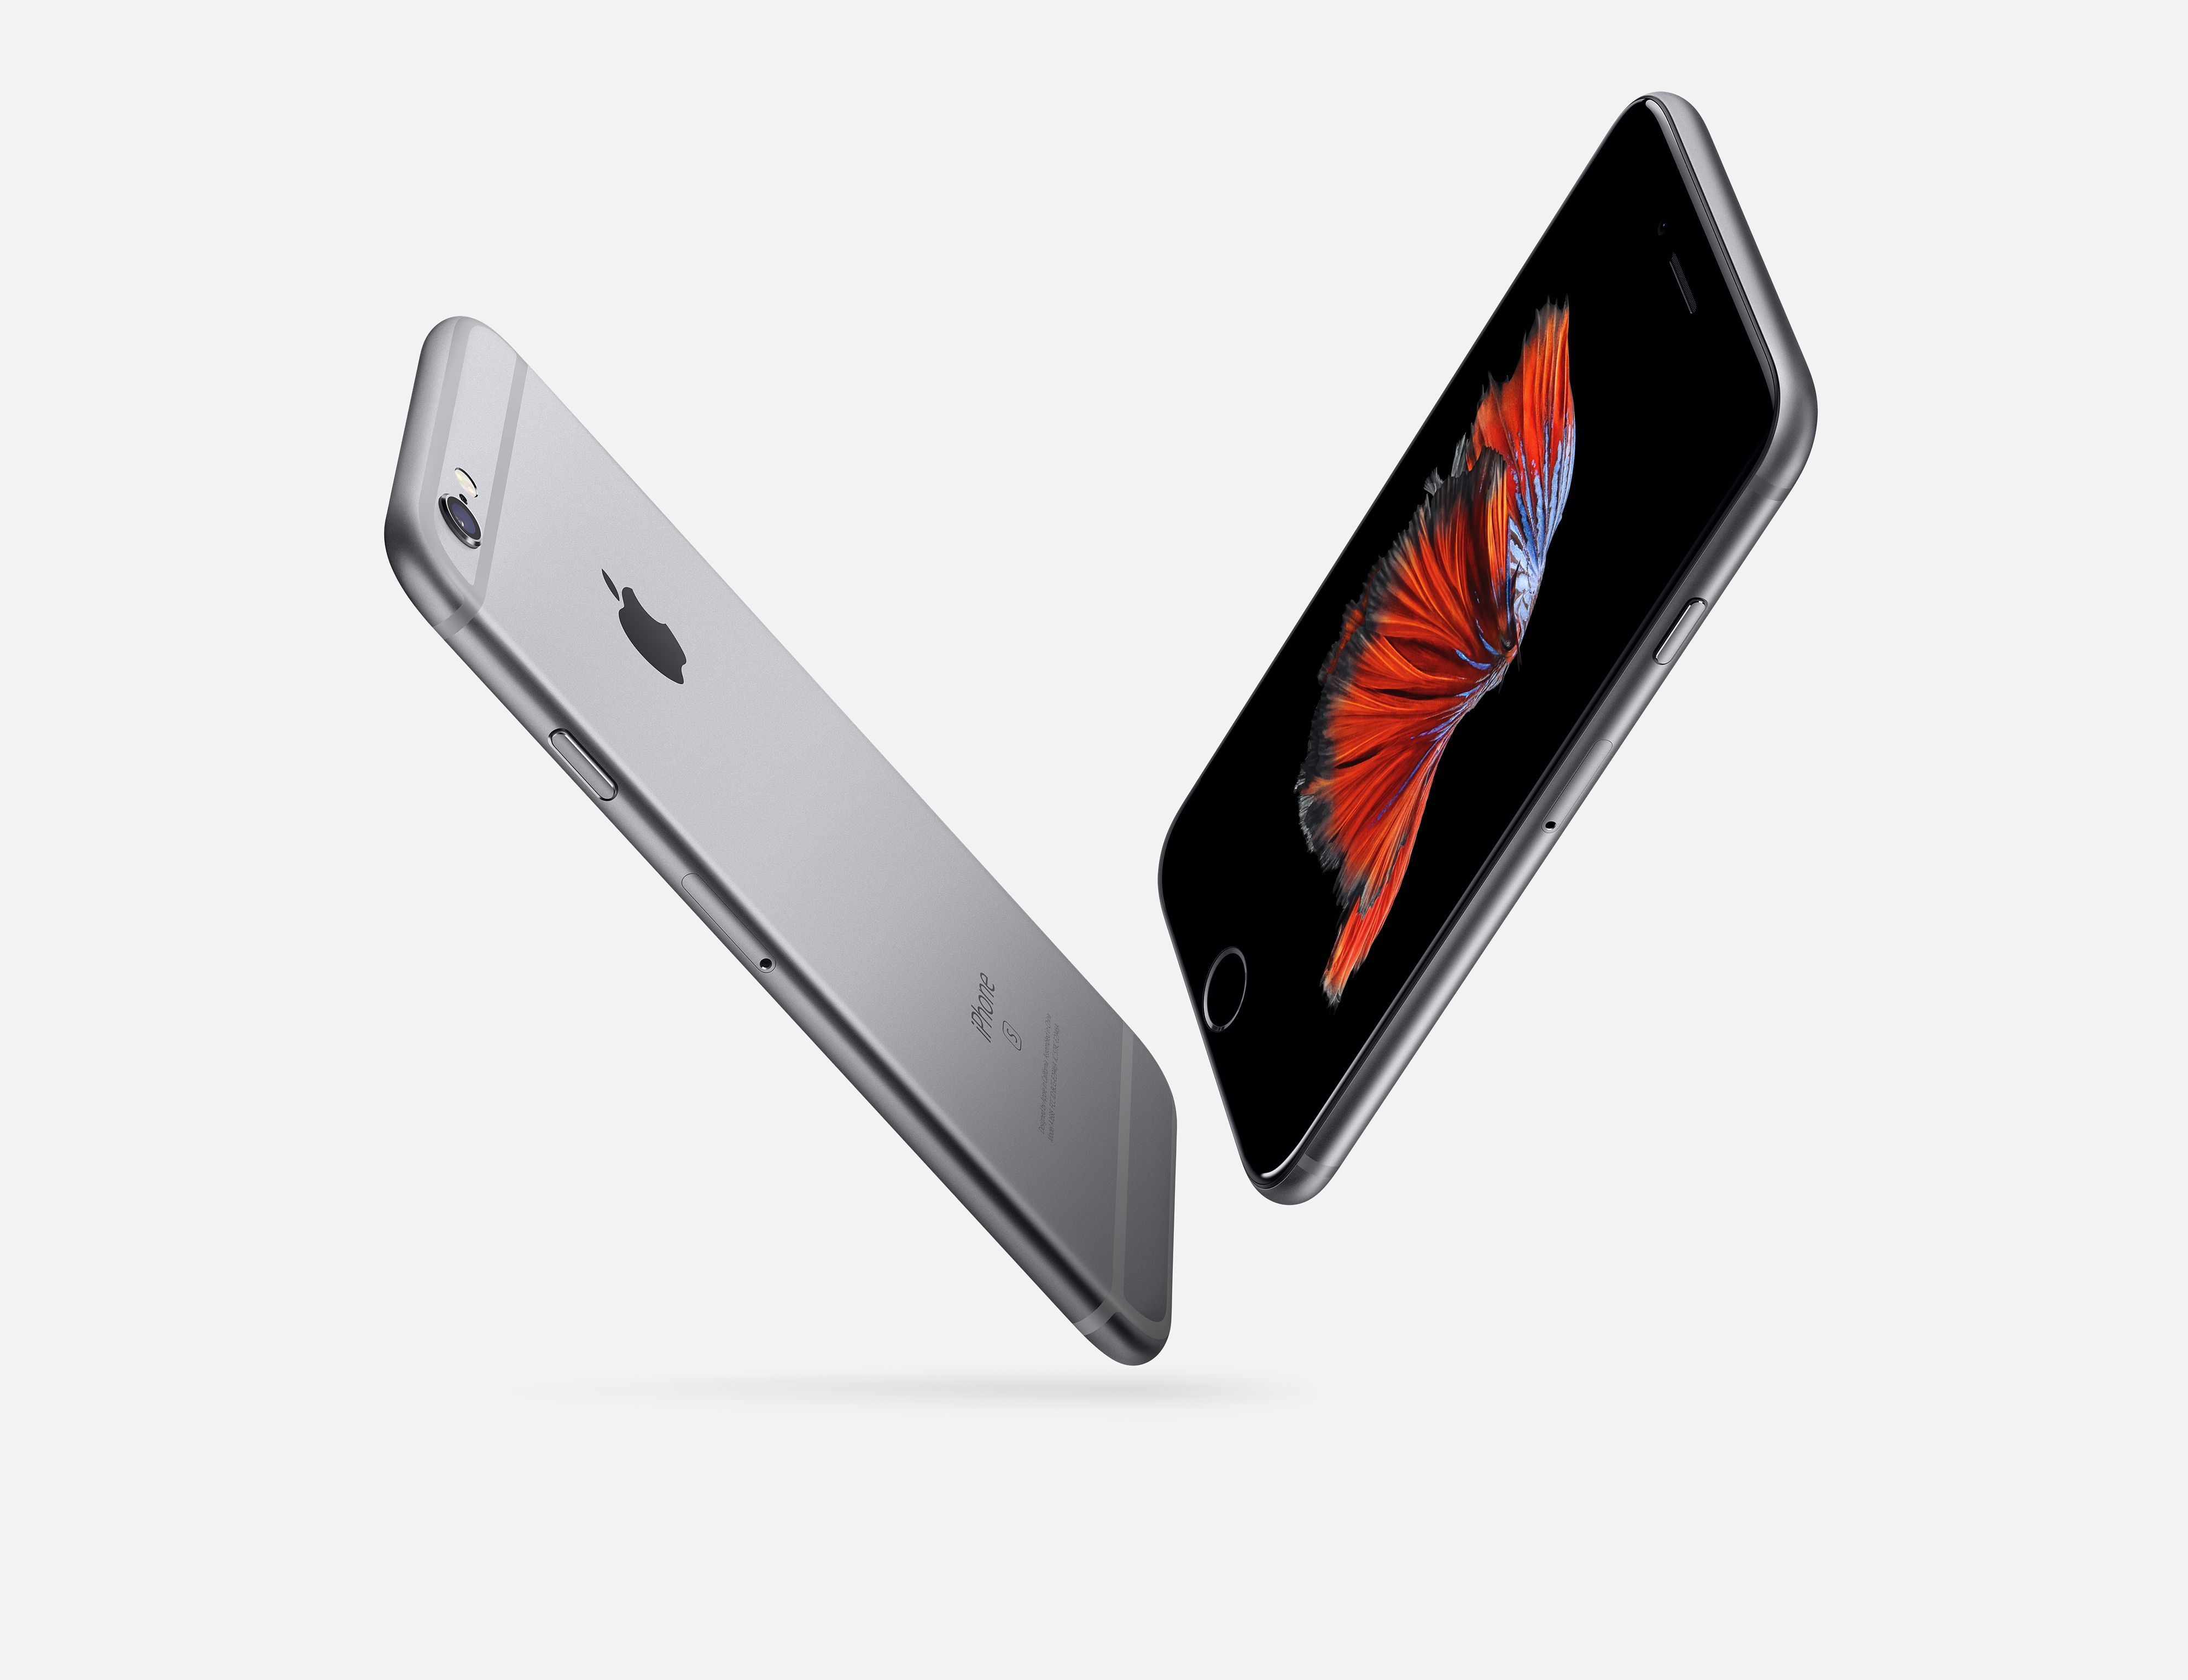 Buy iPhone 6s and iPhone 6s Plus - Apple